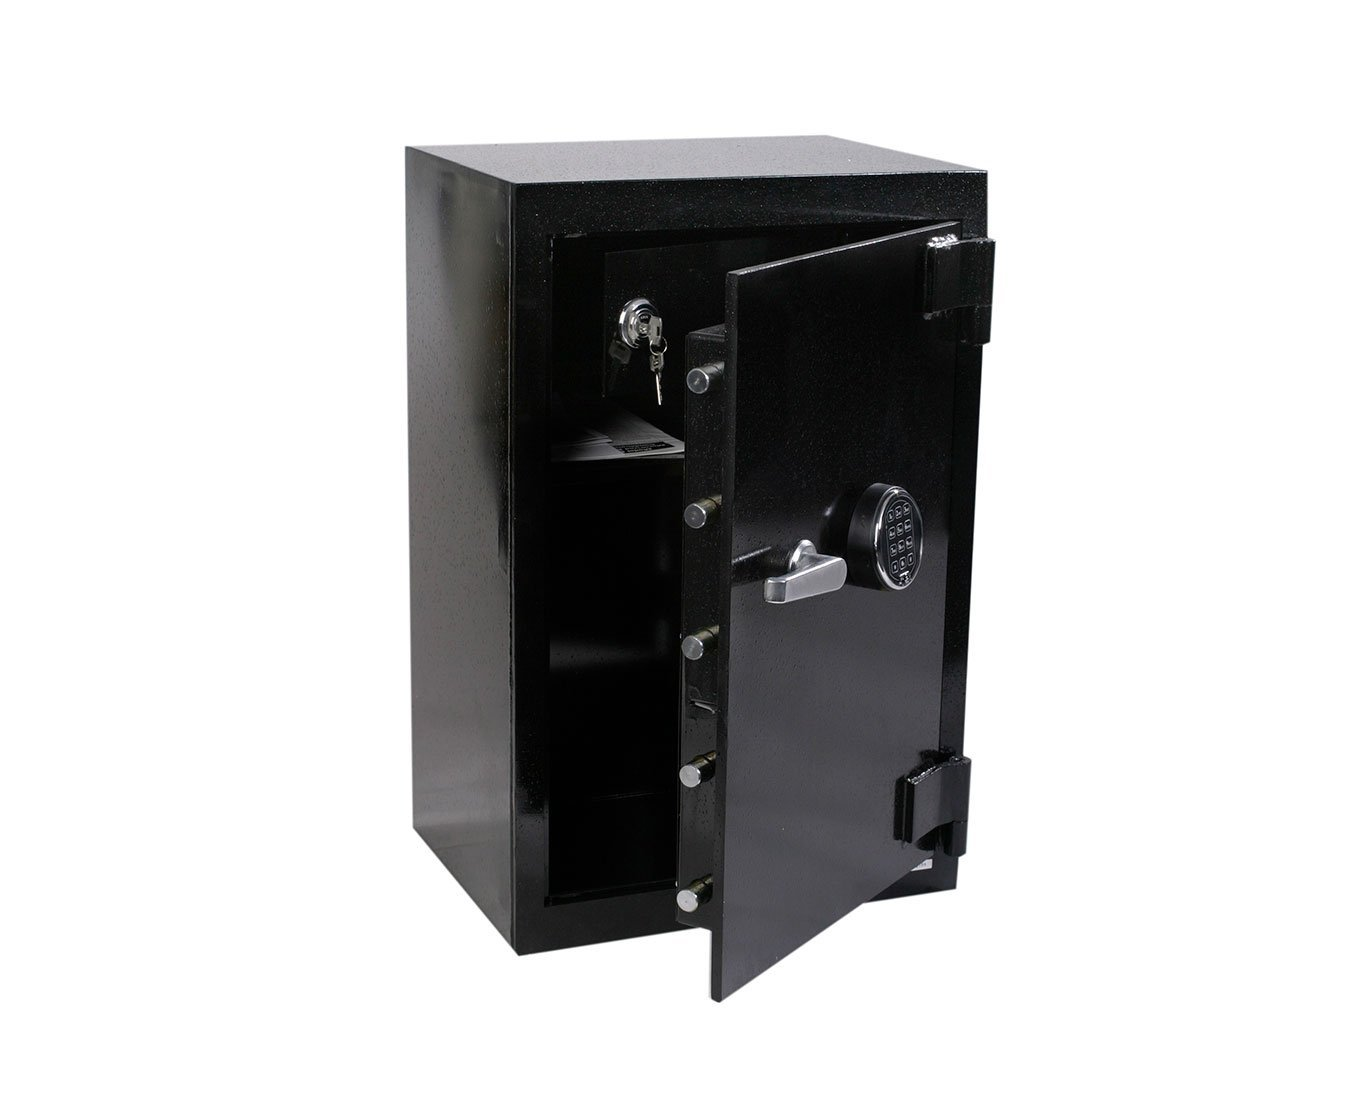 Burglary Safes - FireKing B3018-SR2 Burglary Safe